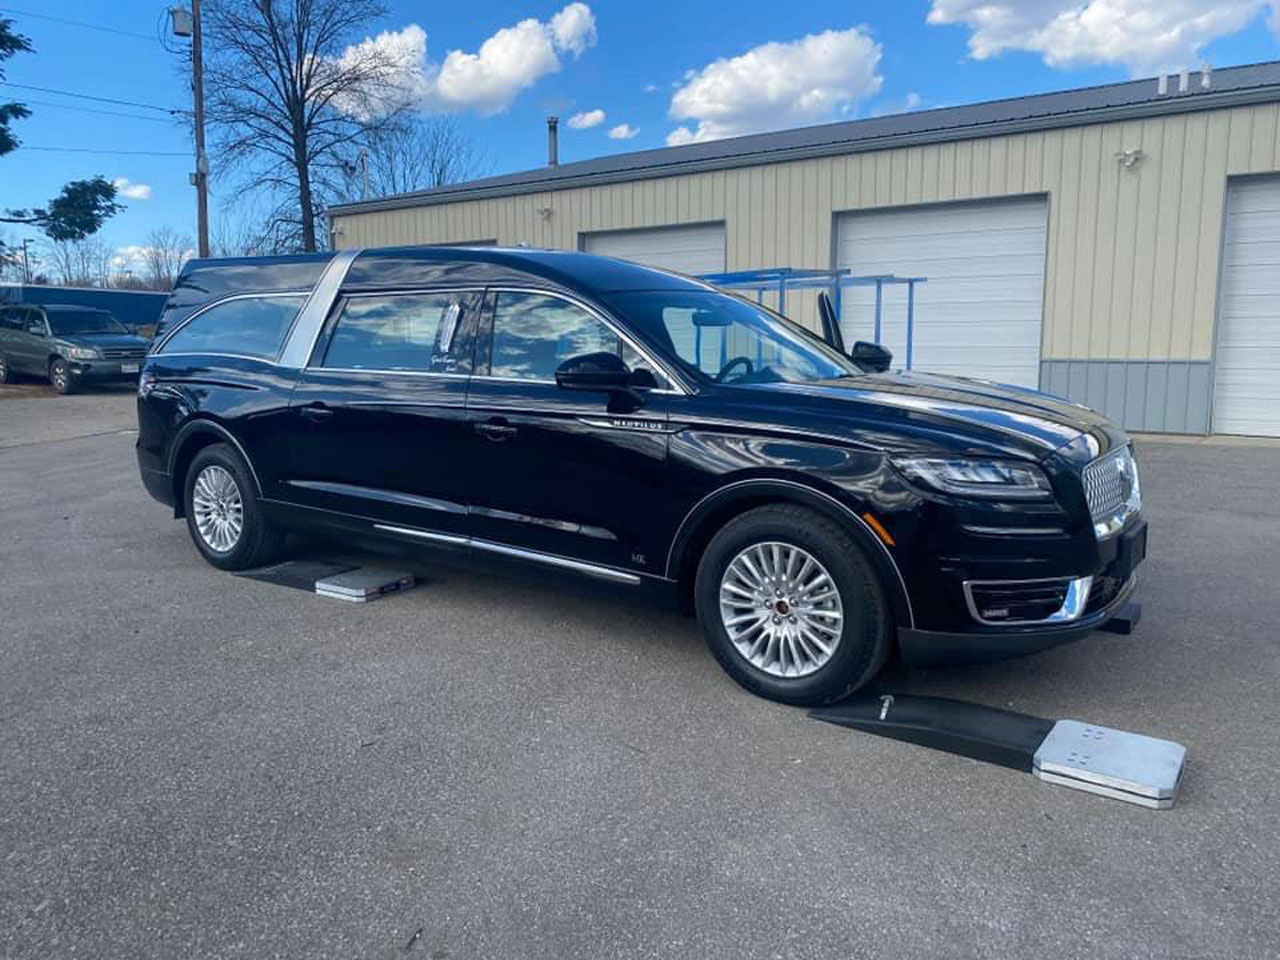 2020 Lincoln MK Grand Legacy Limited Hearse